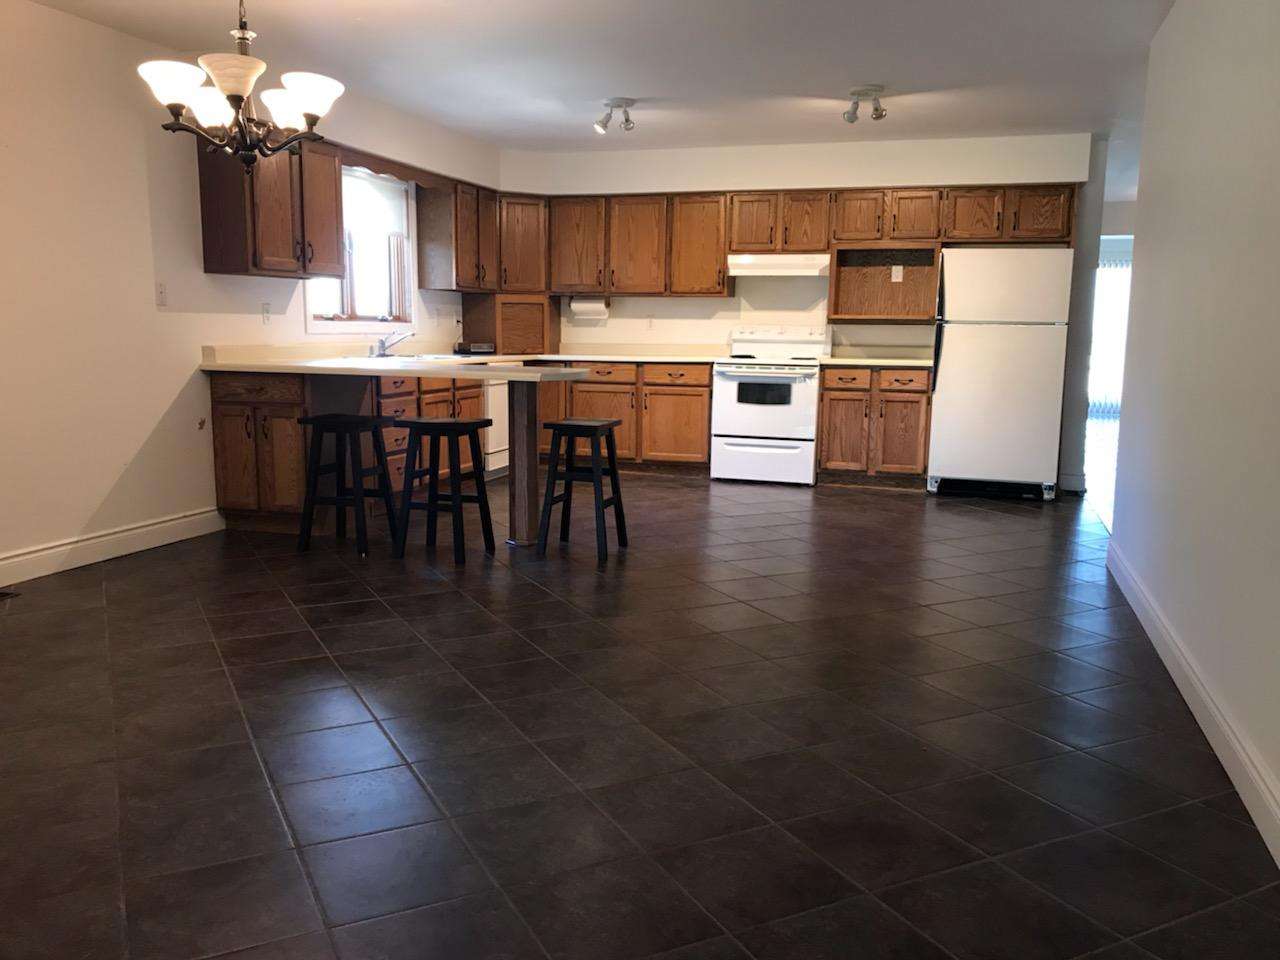 HUGE UPPER APARTMENT WITH 2 DECKS & 2 LIVING AREAS IN PRIME WINDSOR LOCATION